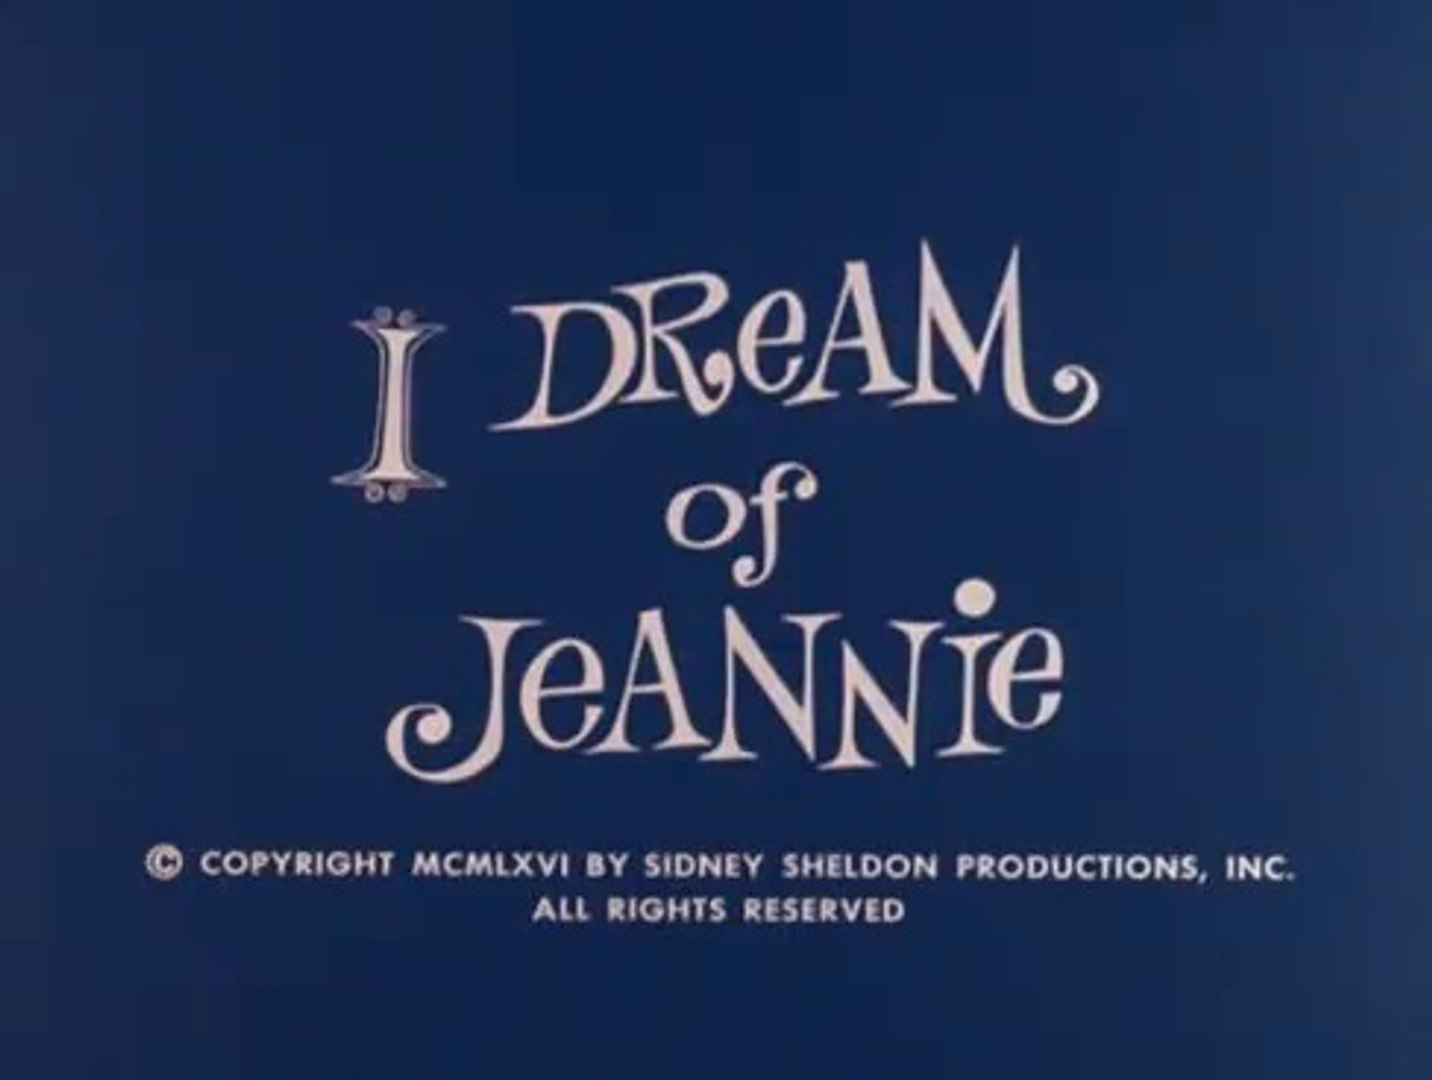 I Dream of Jeannie S-02 EP-25 - My Master, the Pirate (Season 2 Episode 25)